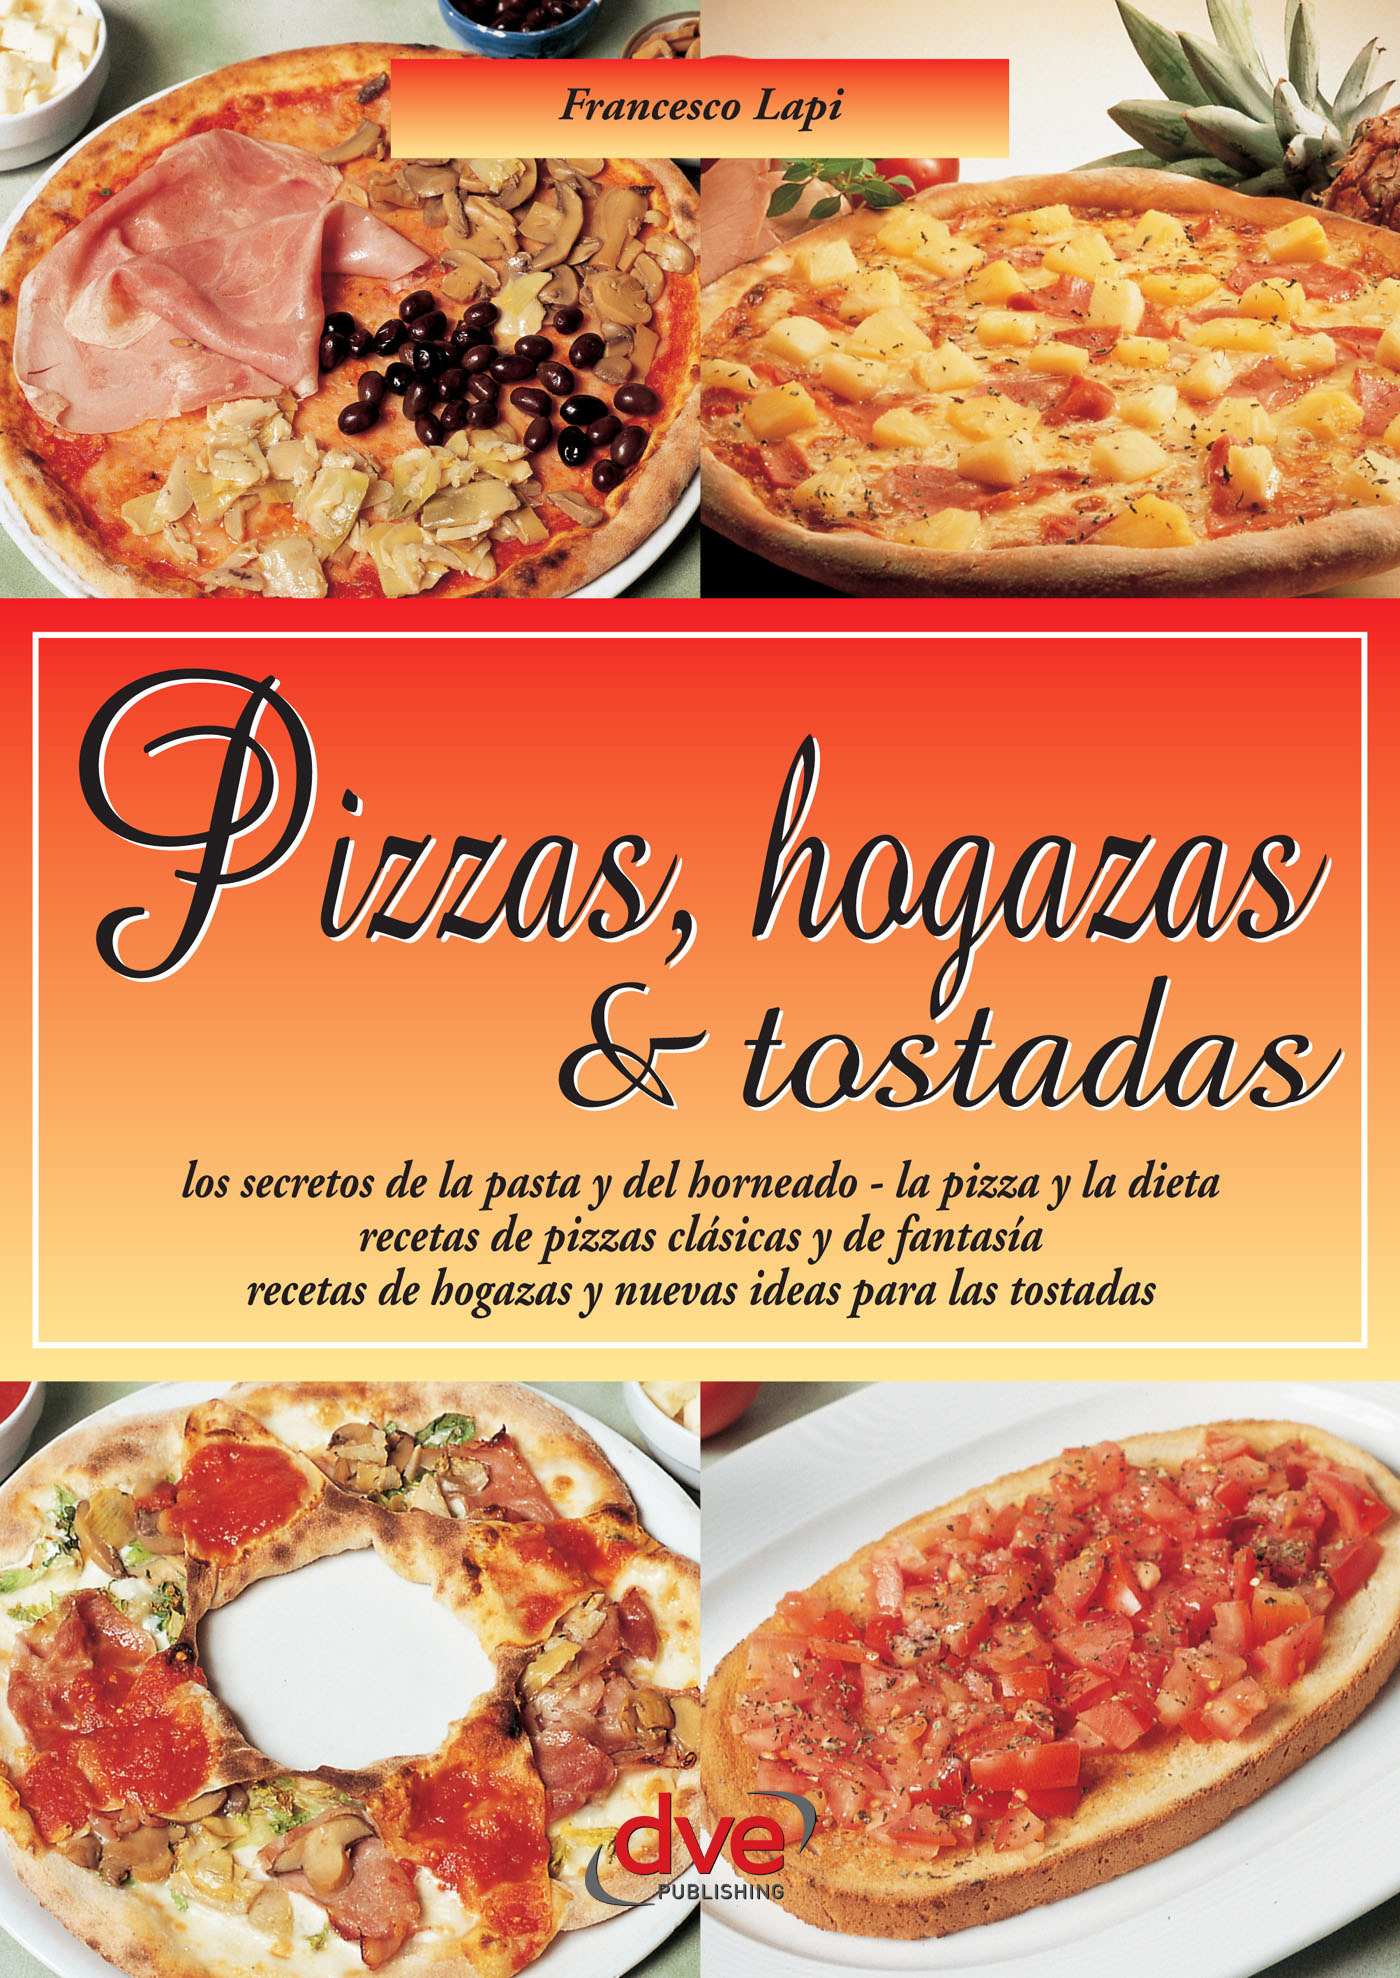 Lapi, Francesco - Pizzas, hogazas & tostadas. Las Guias Faciles, ebook